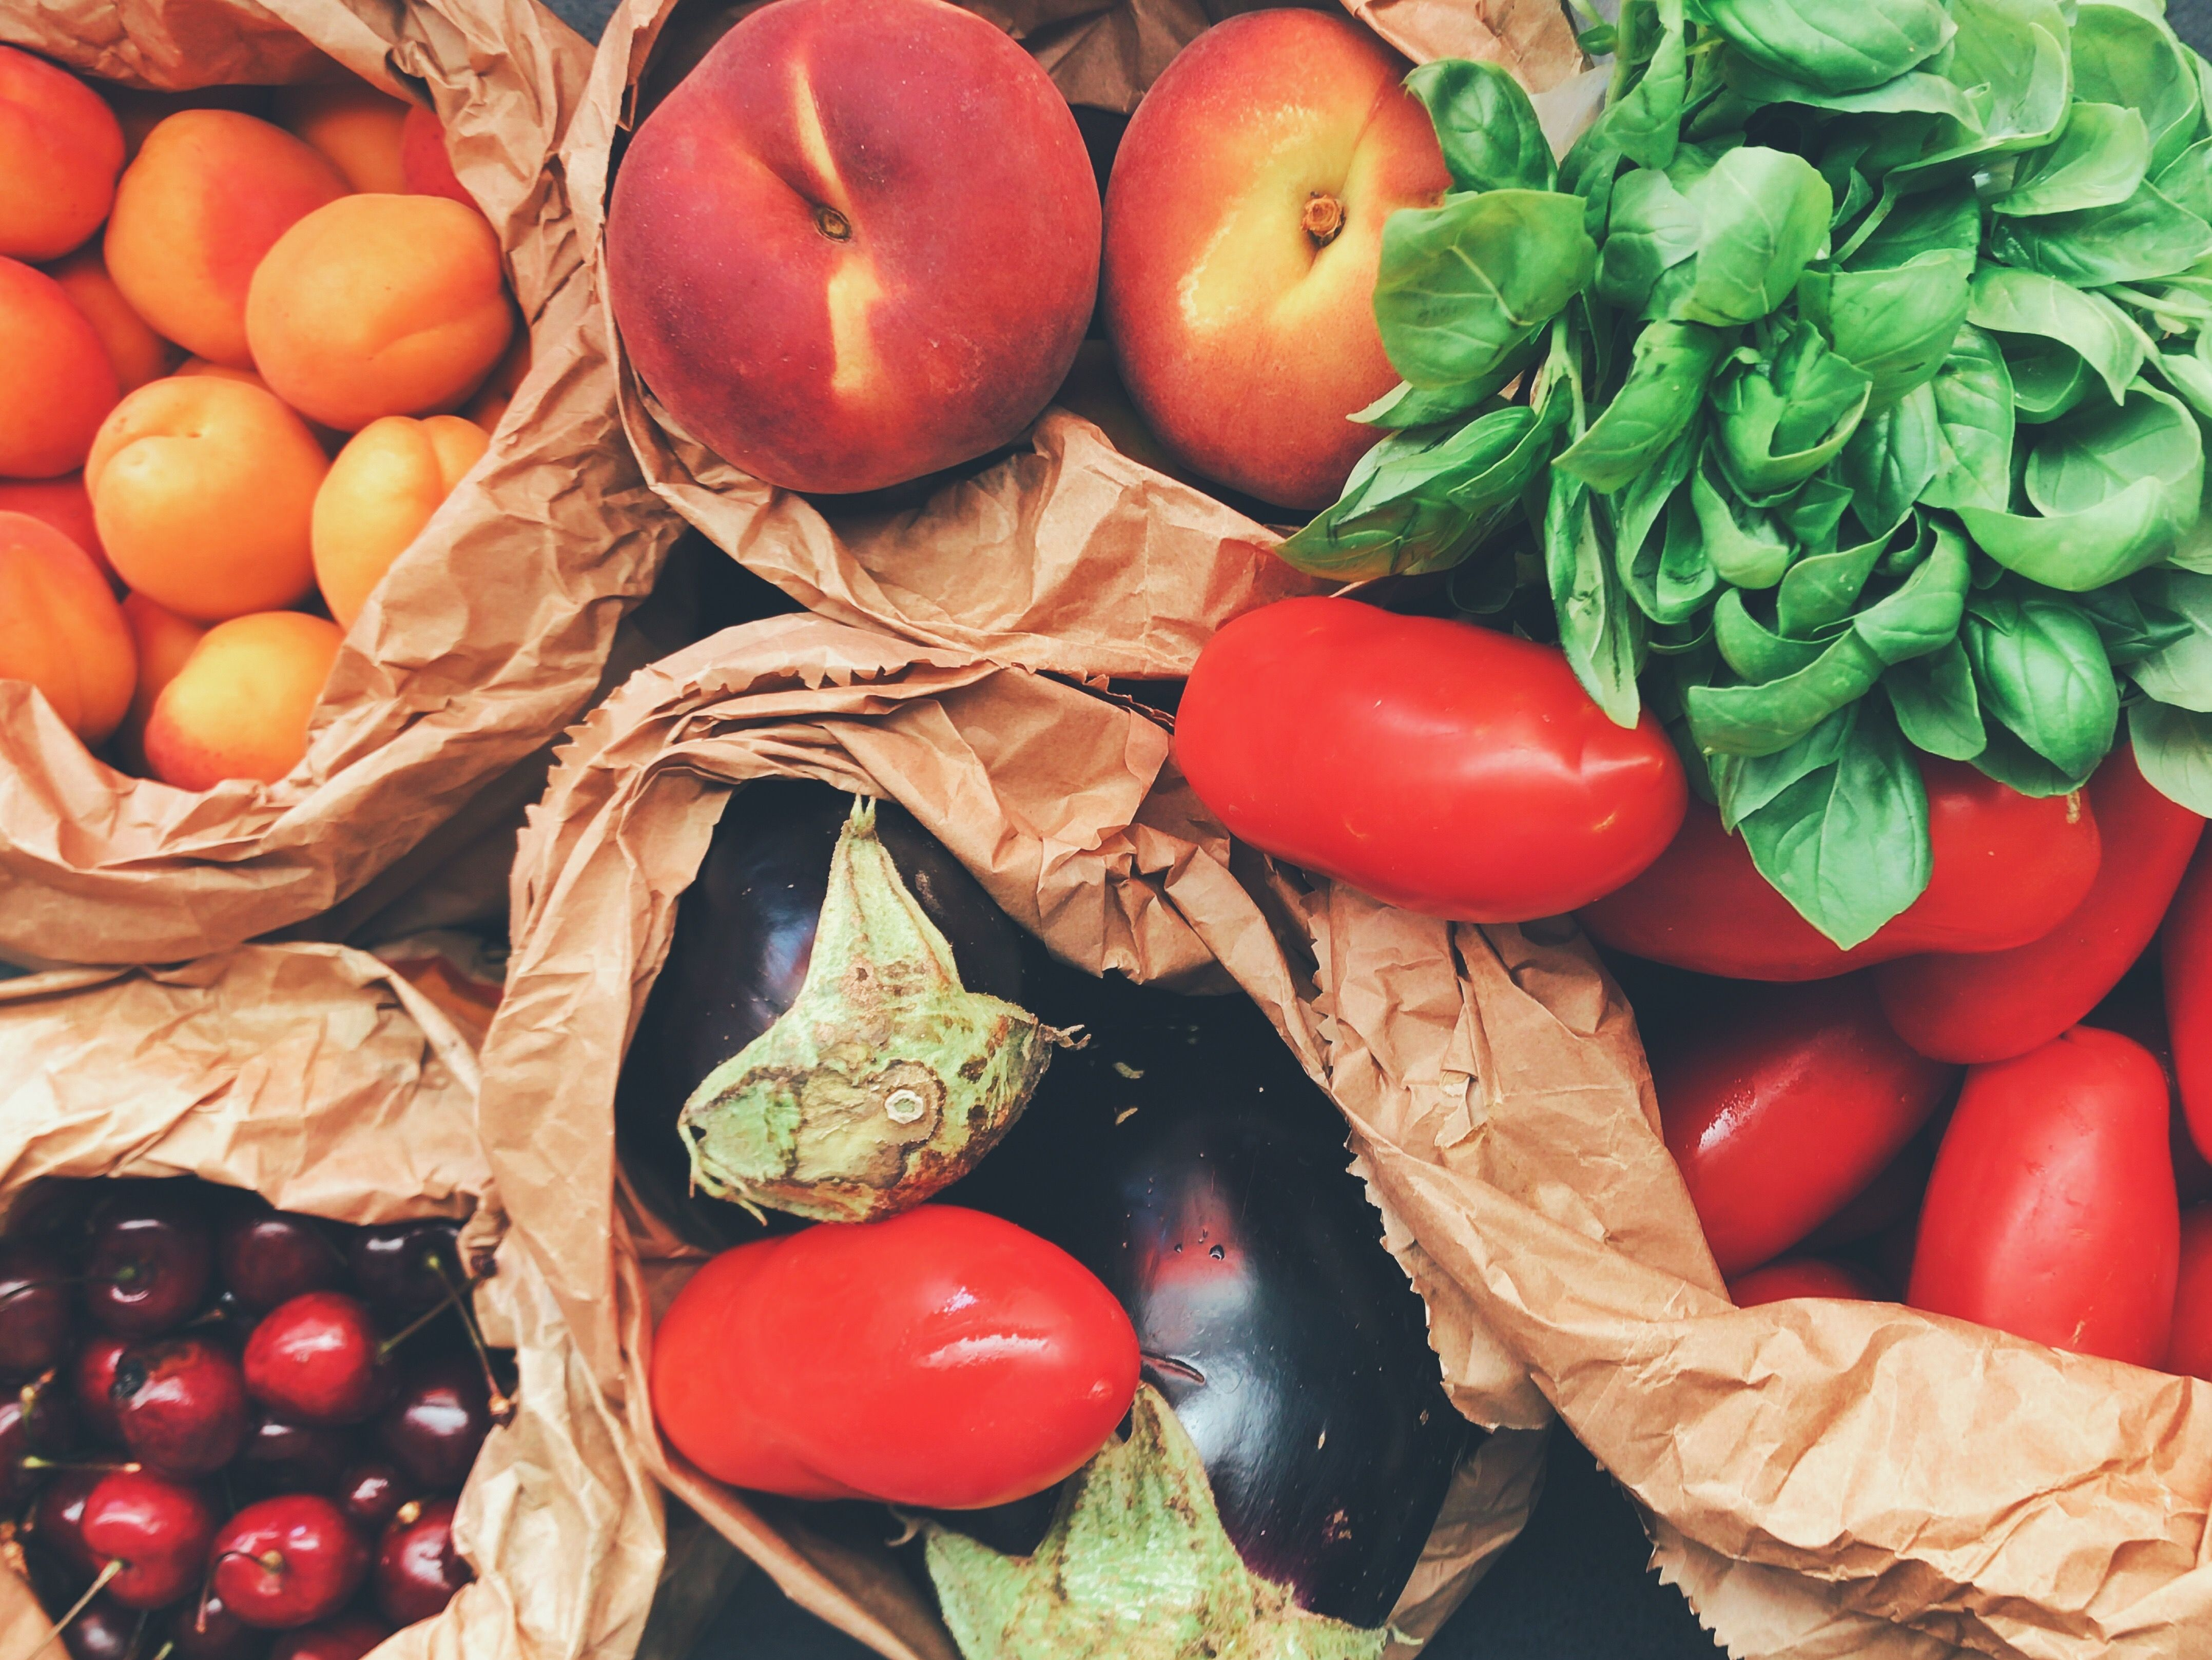 Cheap healthy grocery list for weight loss